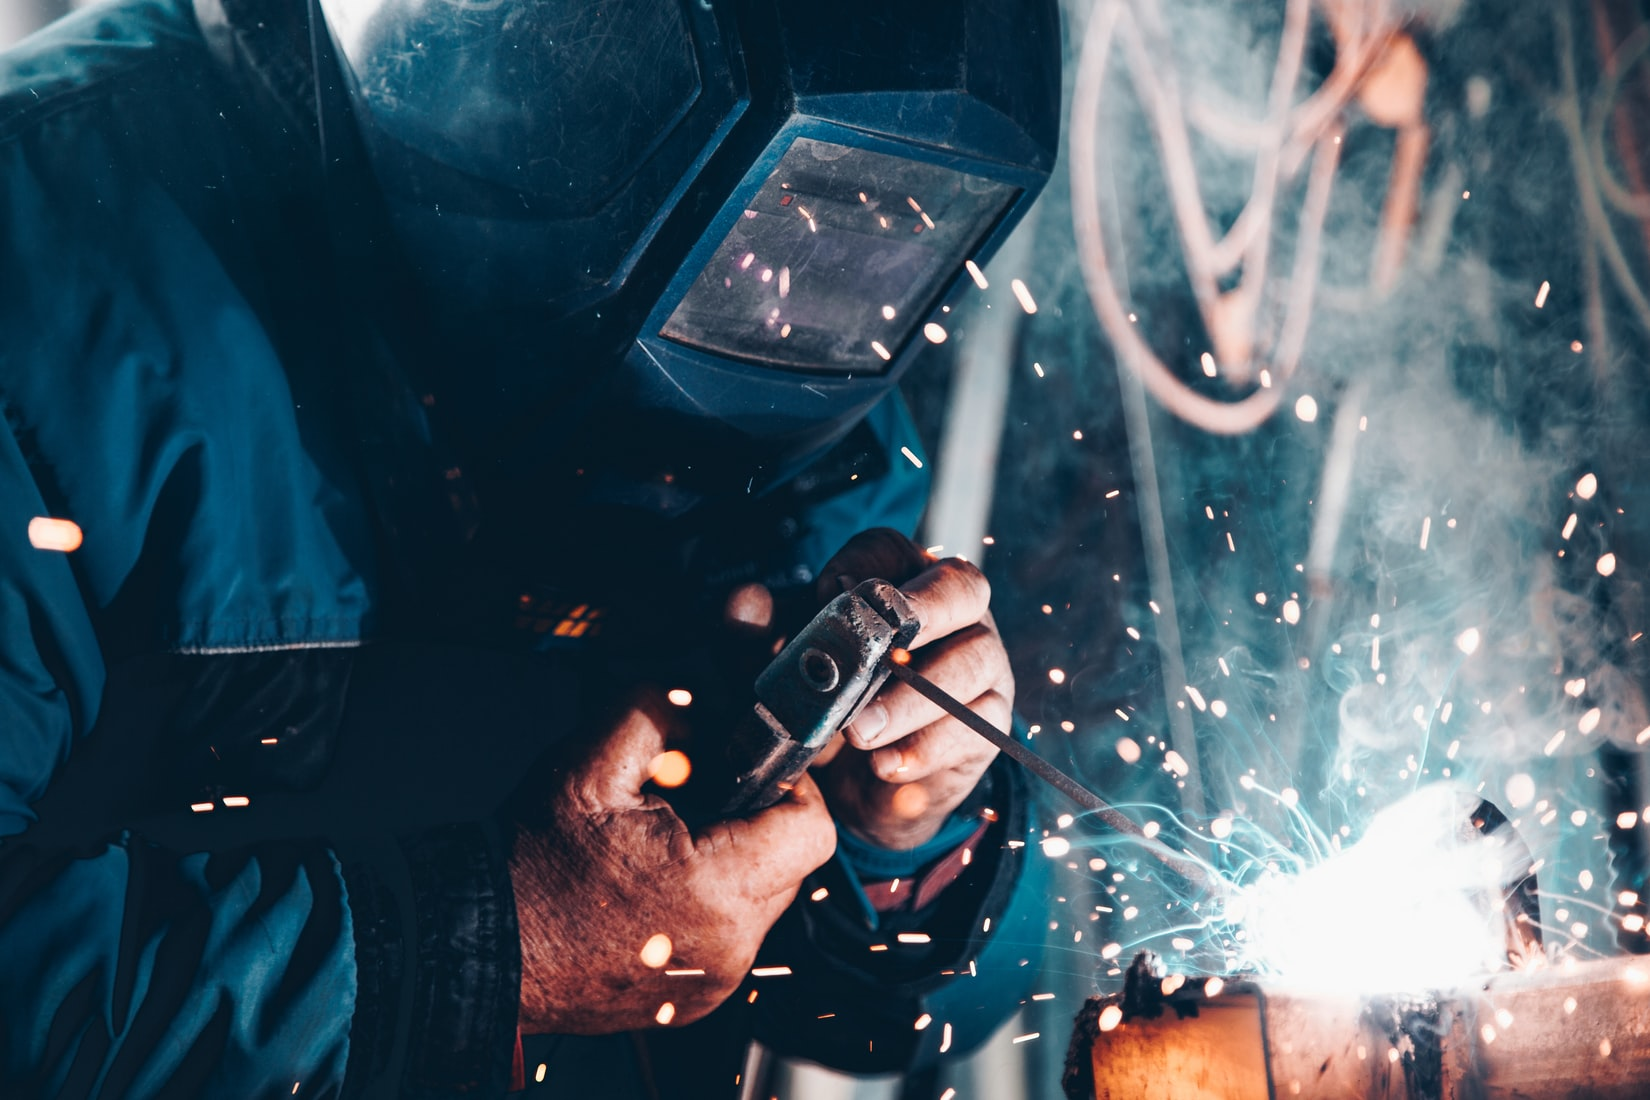 Four jobs to consider in an industrial career